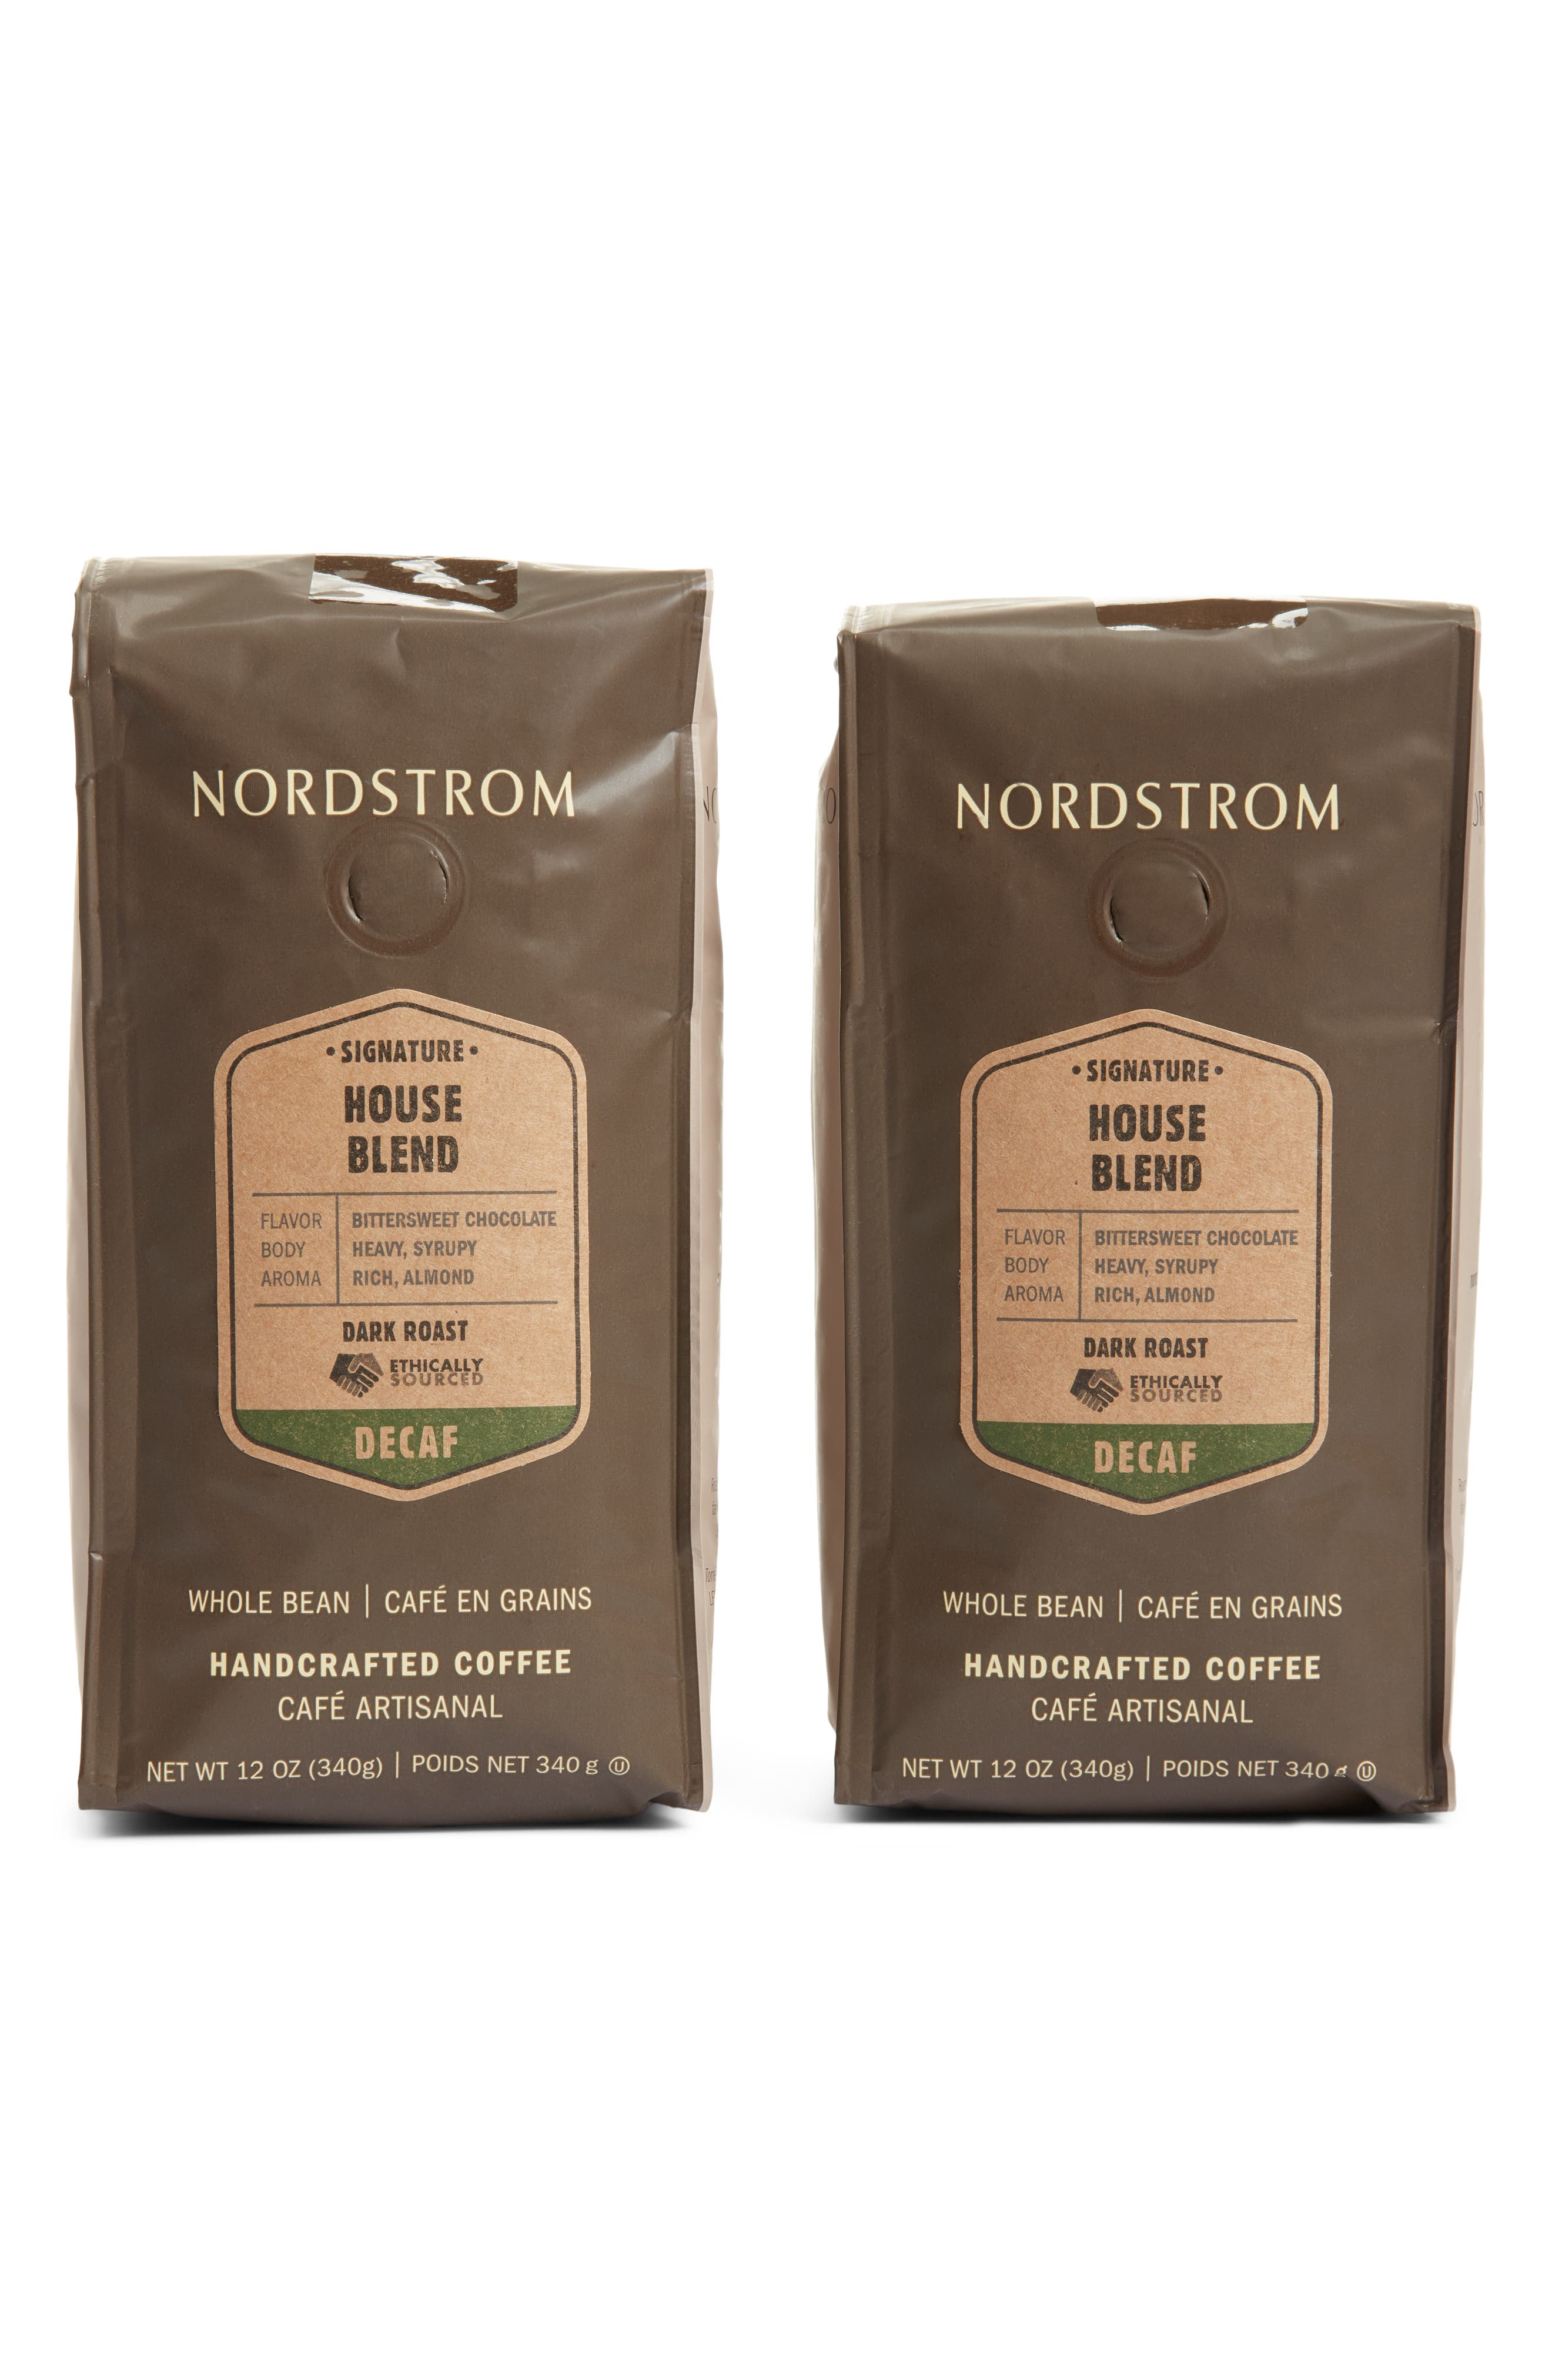 Ethically sourced from the world\\\'s premier coffee-growing regions, this decaf dark-roast blend features hints of bittersweet chocolate and stone fruit. Cupping notes:- Roast: dark- Flavor: bittersweet chocolate- Body: heavy, syrupy- Aroma: rich, almond. Style Name: Nordstrom Ethically Sourced Decaf House Blend 2-Pack Whole Bean Coffee. Style Number: 5864316. Available in stores.